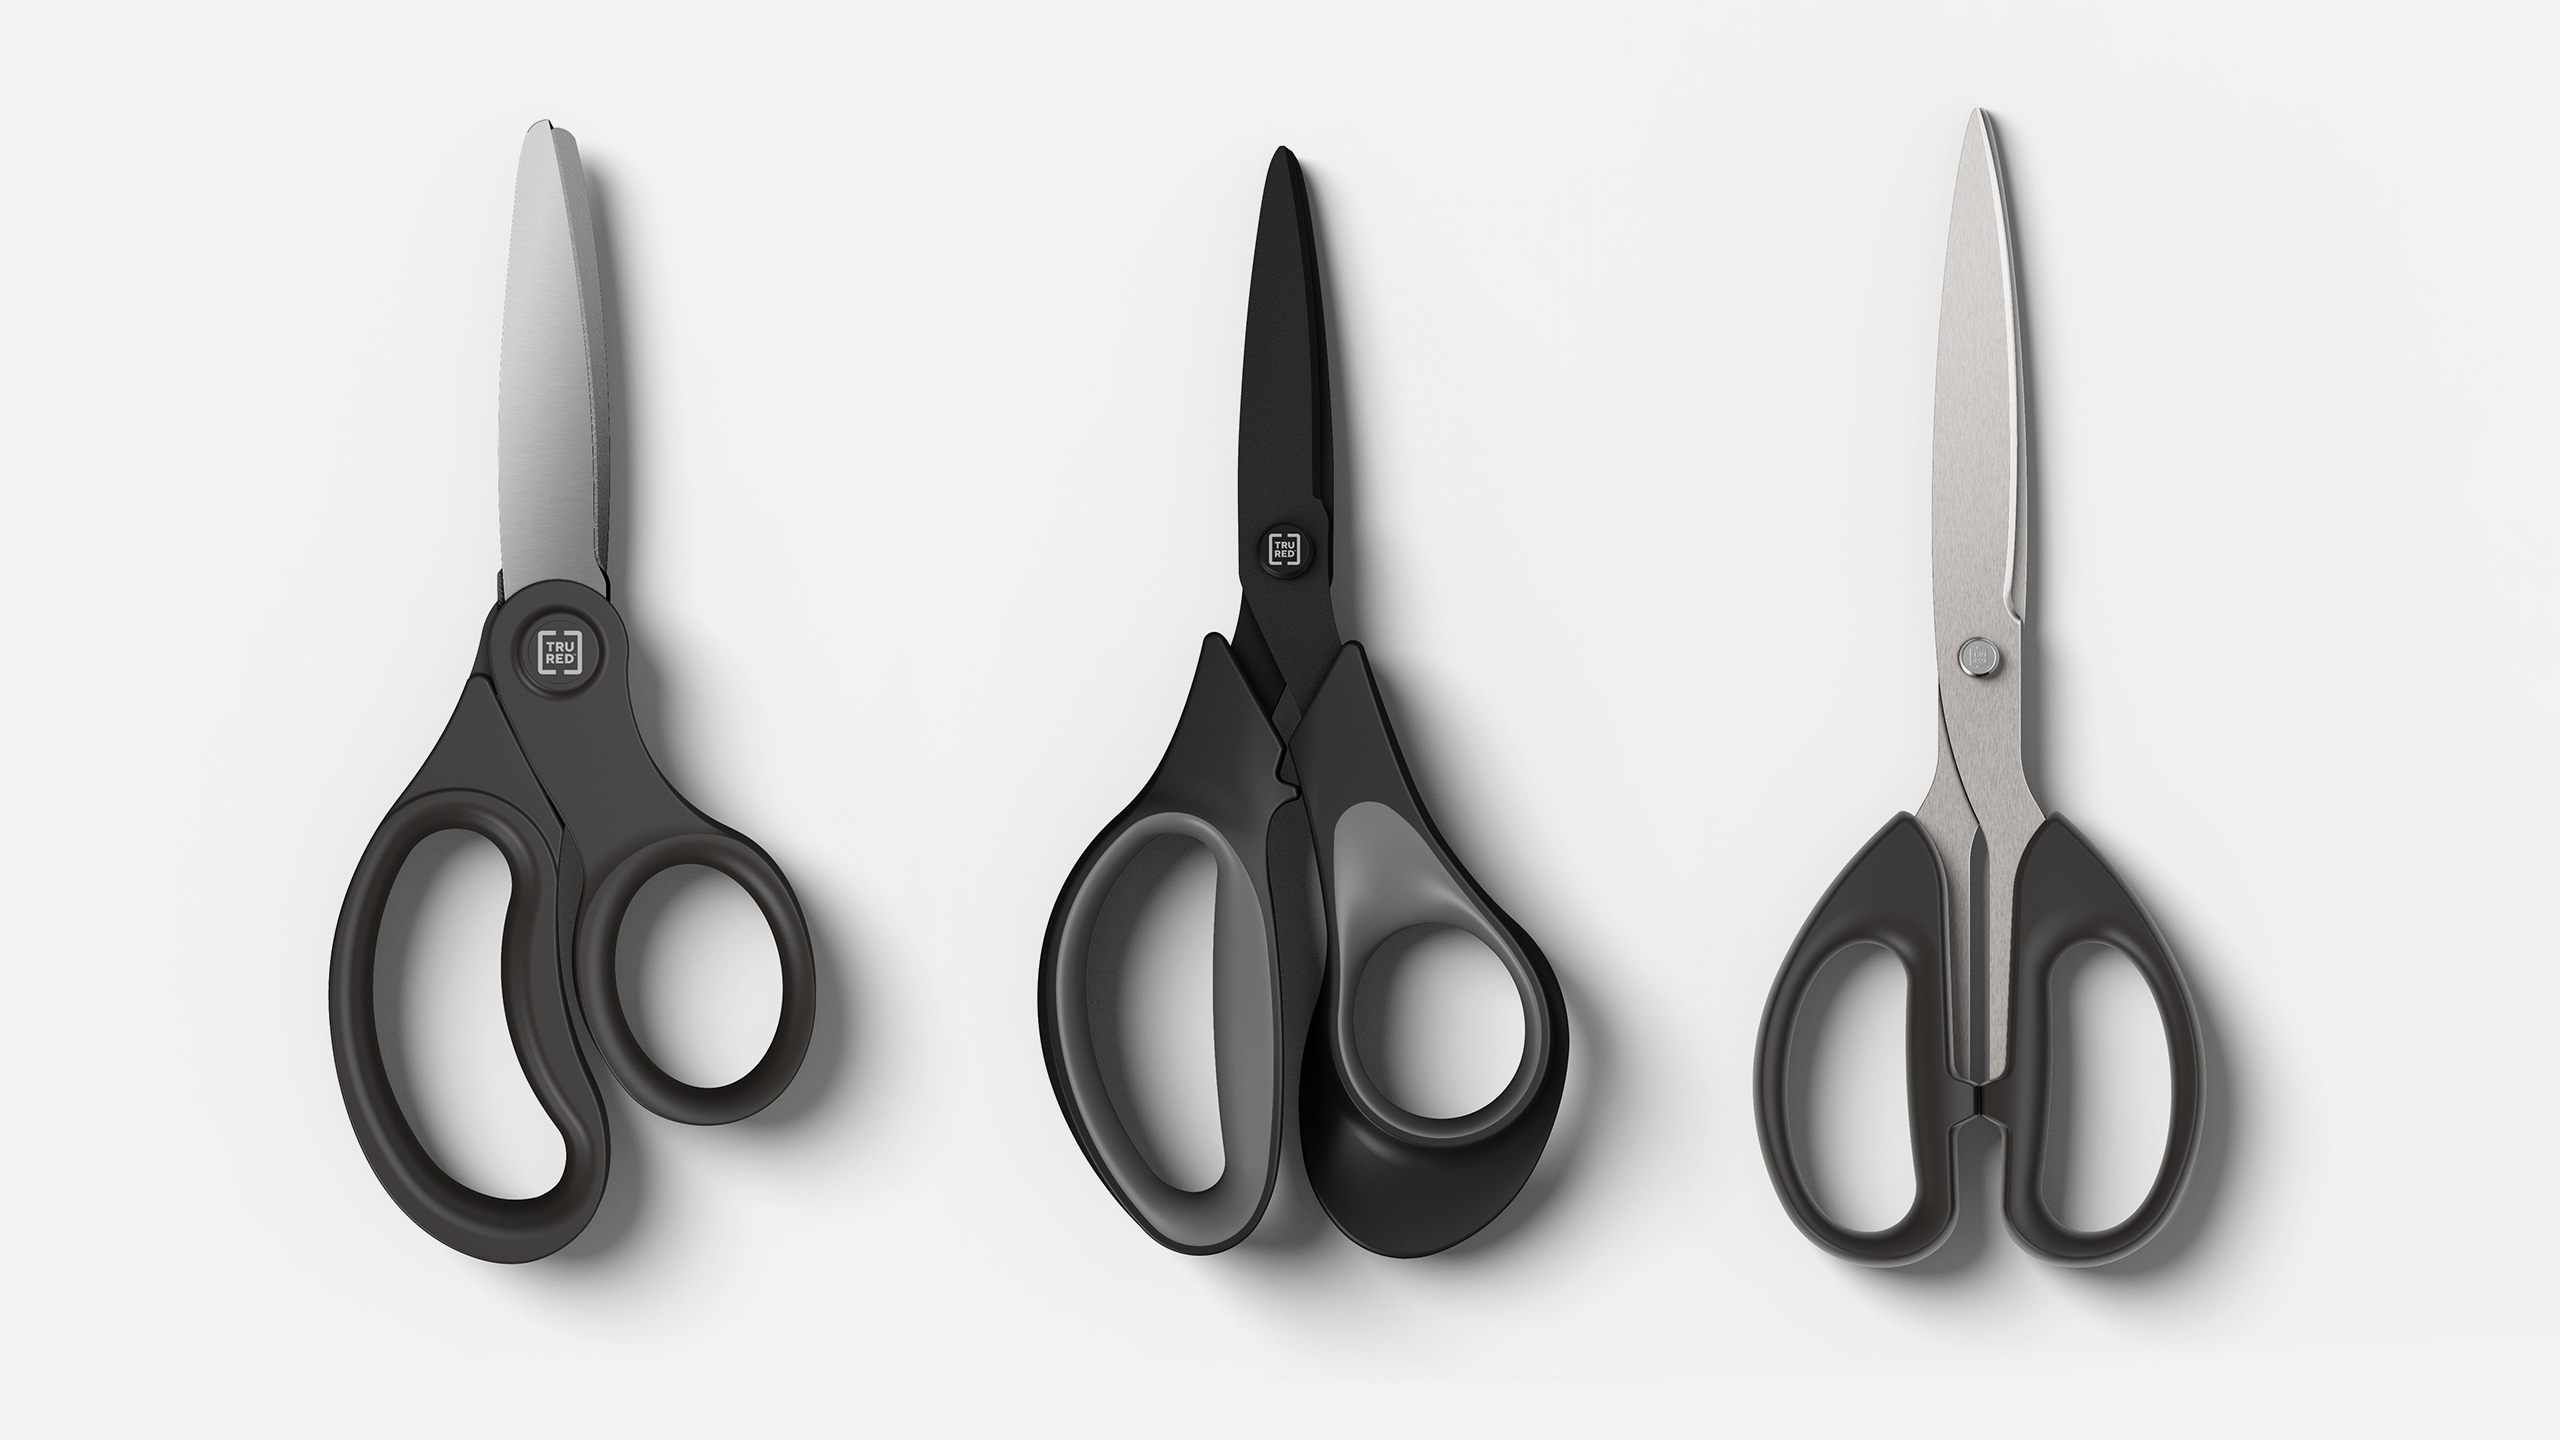 3D CGI Render of three Staples Tru Red scissors on a white background by Sprout Viz